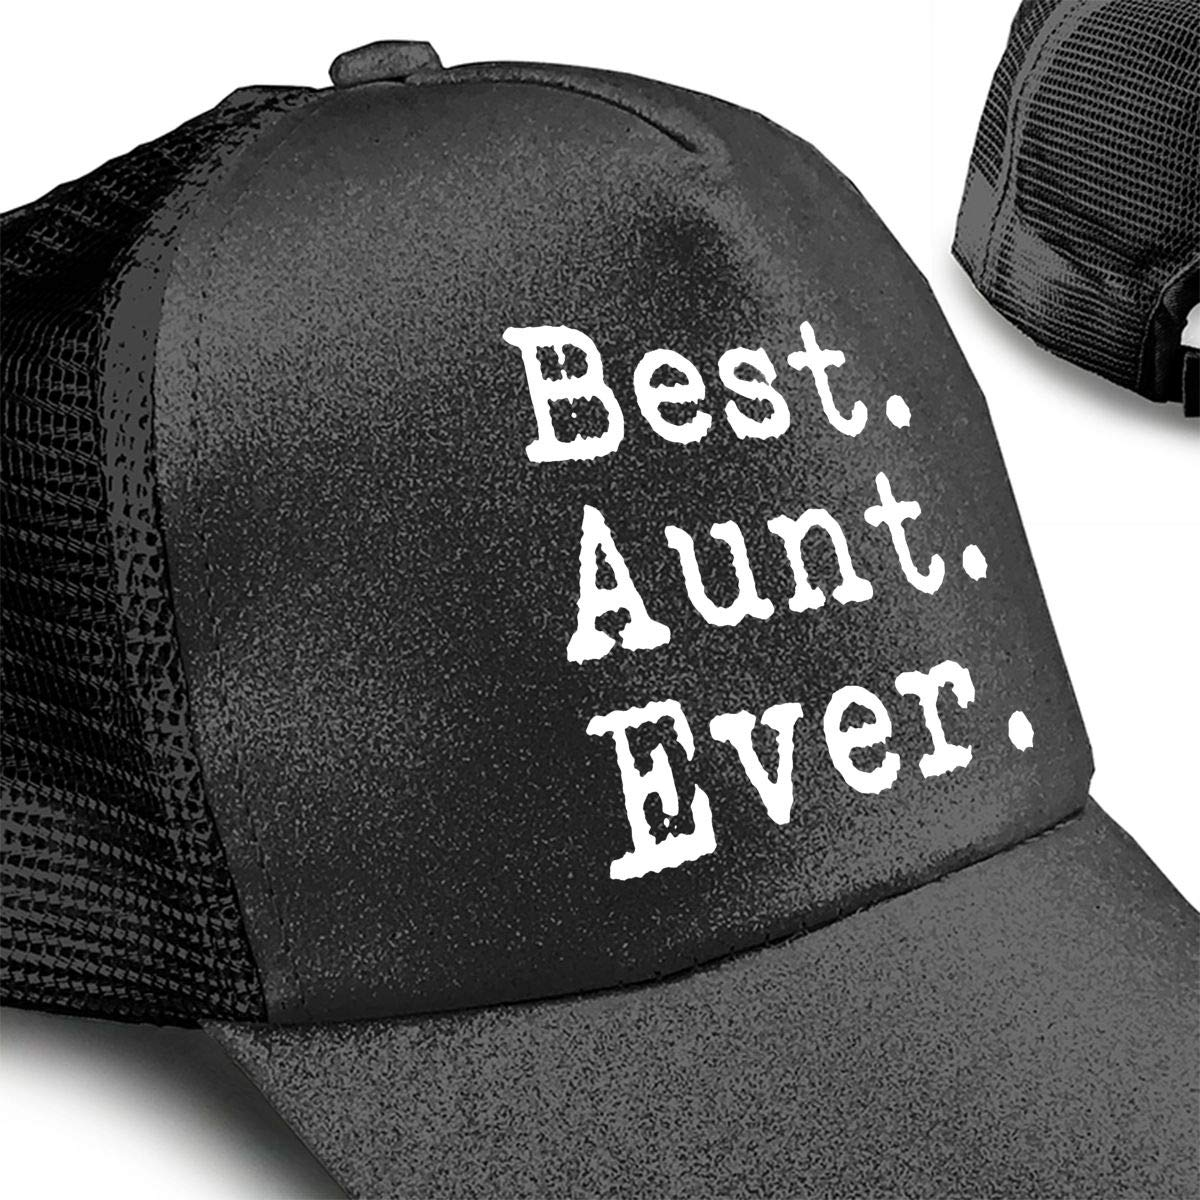 Best Aunt Ever Gift for Auntie from Nephew Or Niece Ponytail Messy High Bun Hat Ponycaps Baseball Cap Adjustable Trucker Cap Mesh Cap